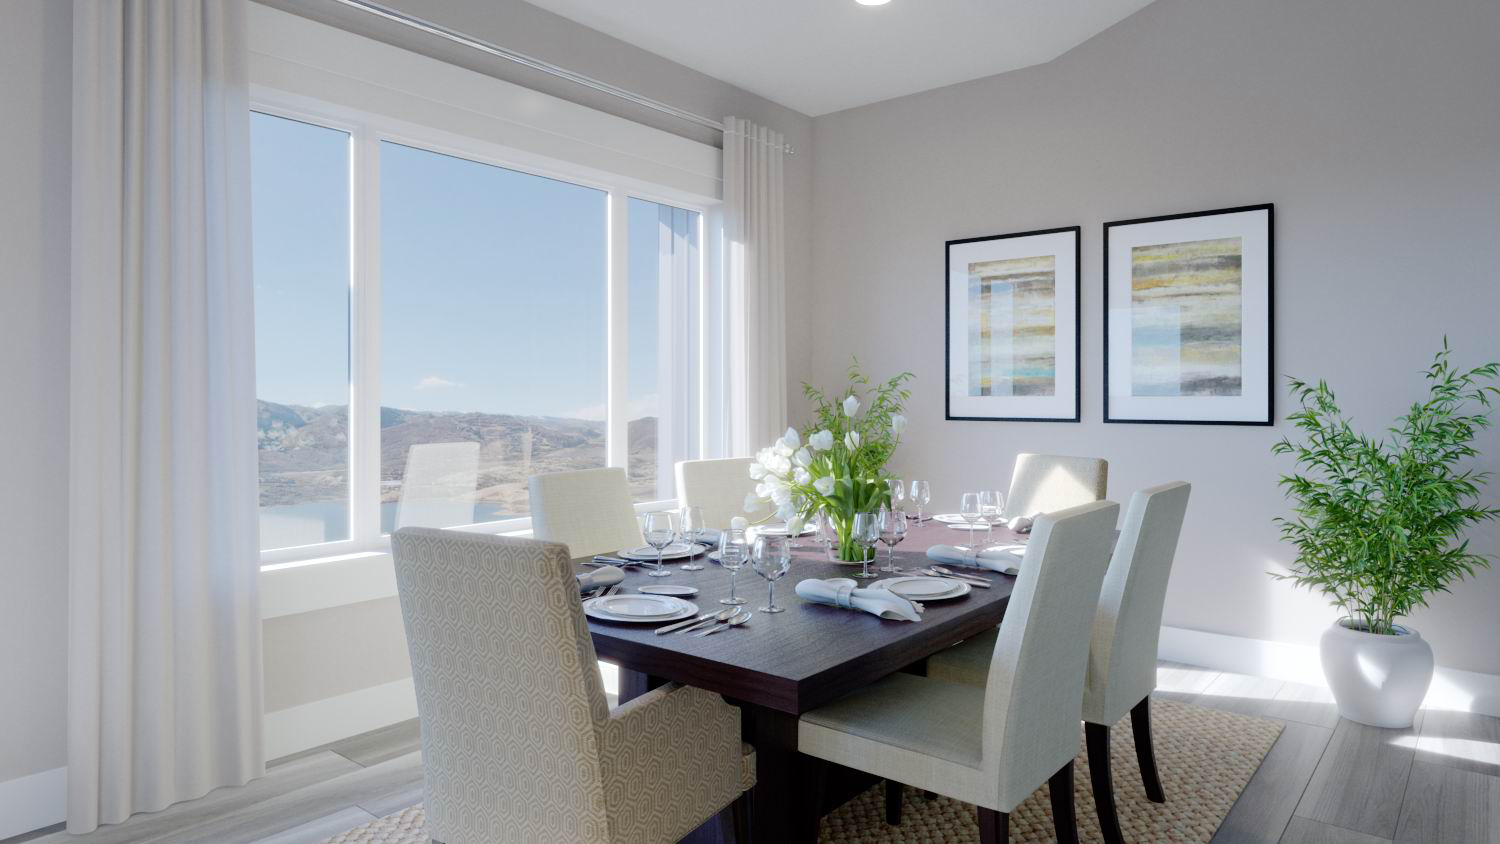 luxury dining room in townhome with mountain view